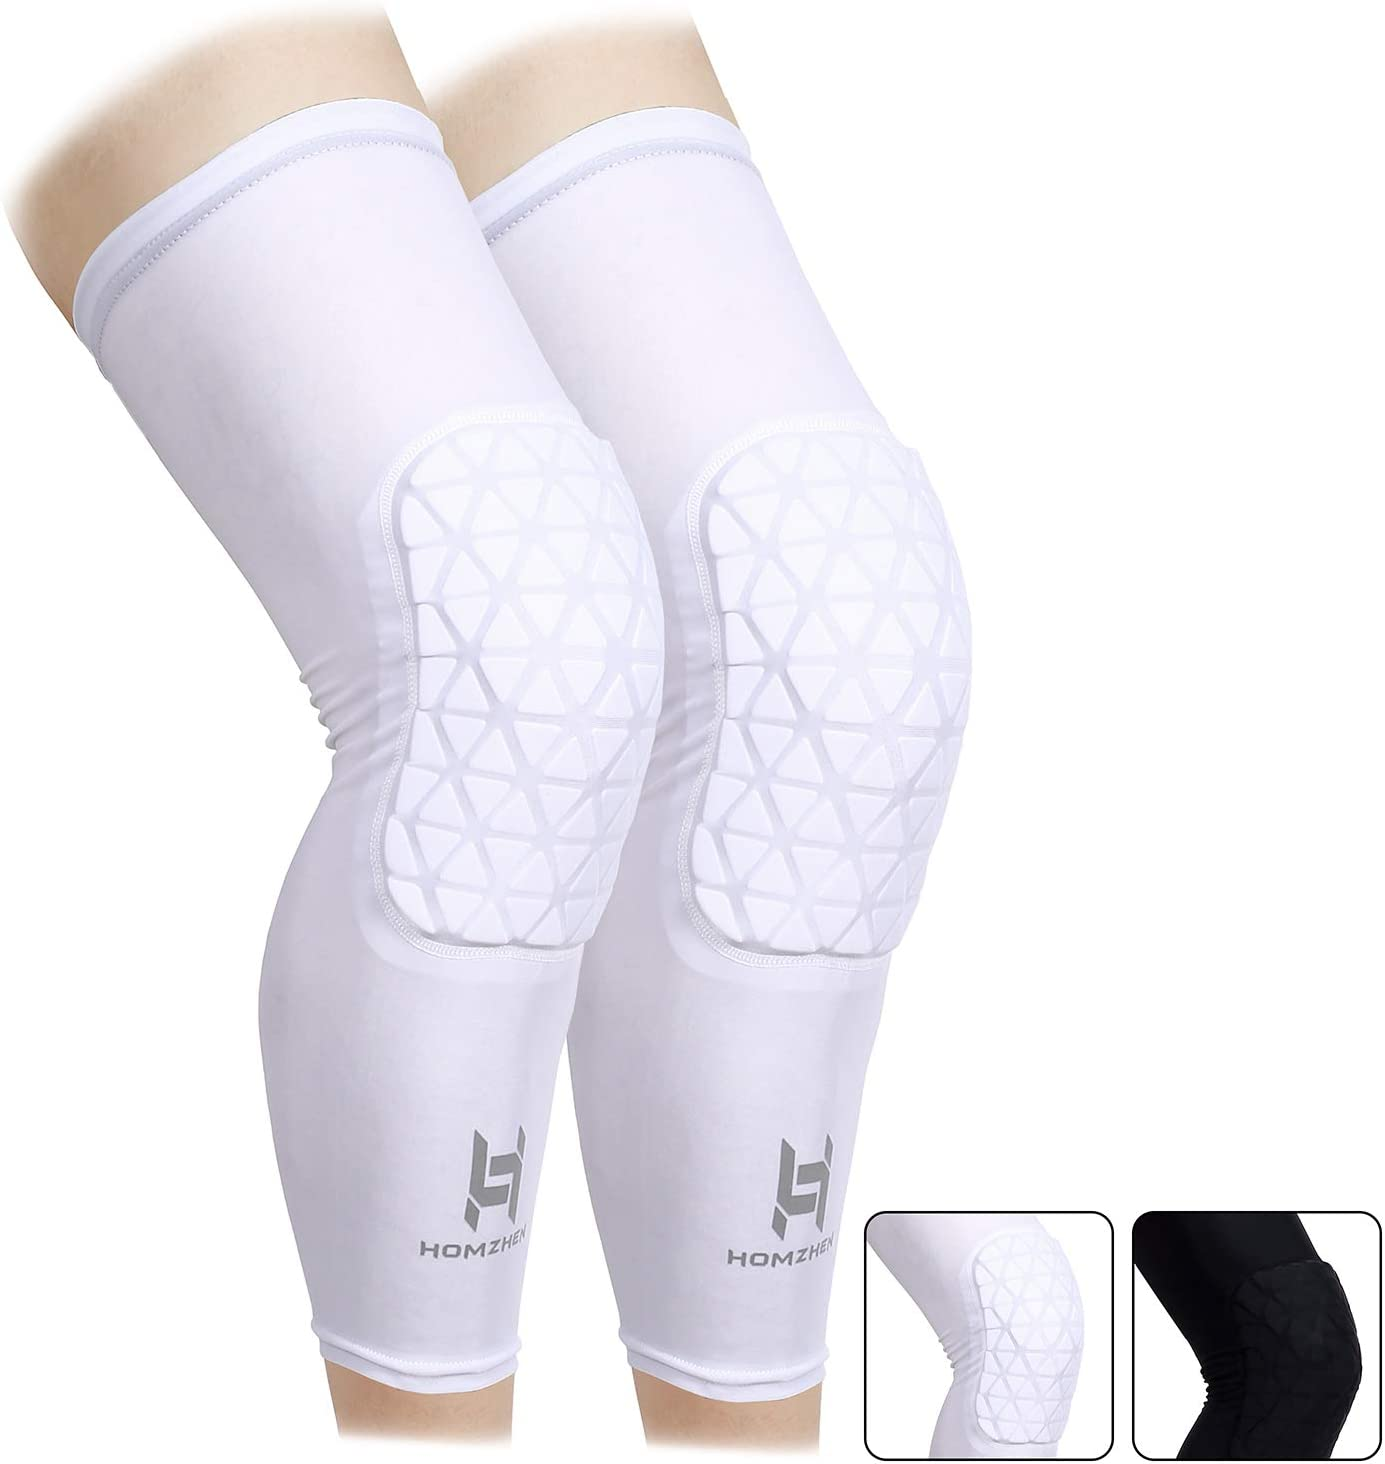 Knee Compression Sleeves Knee Braces